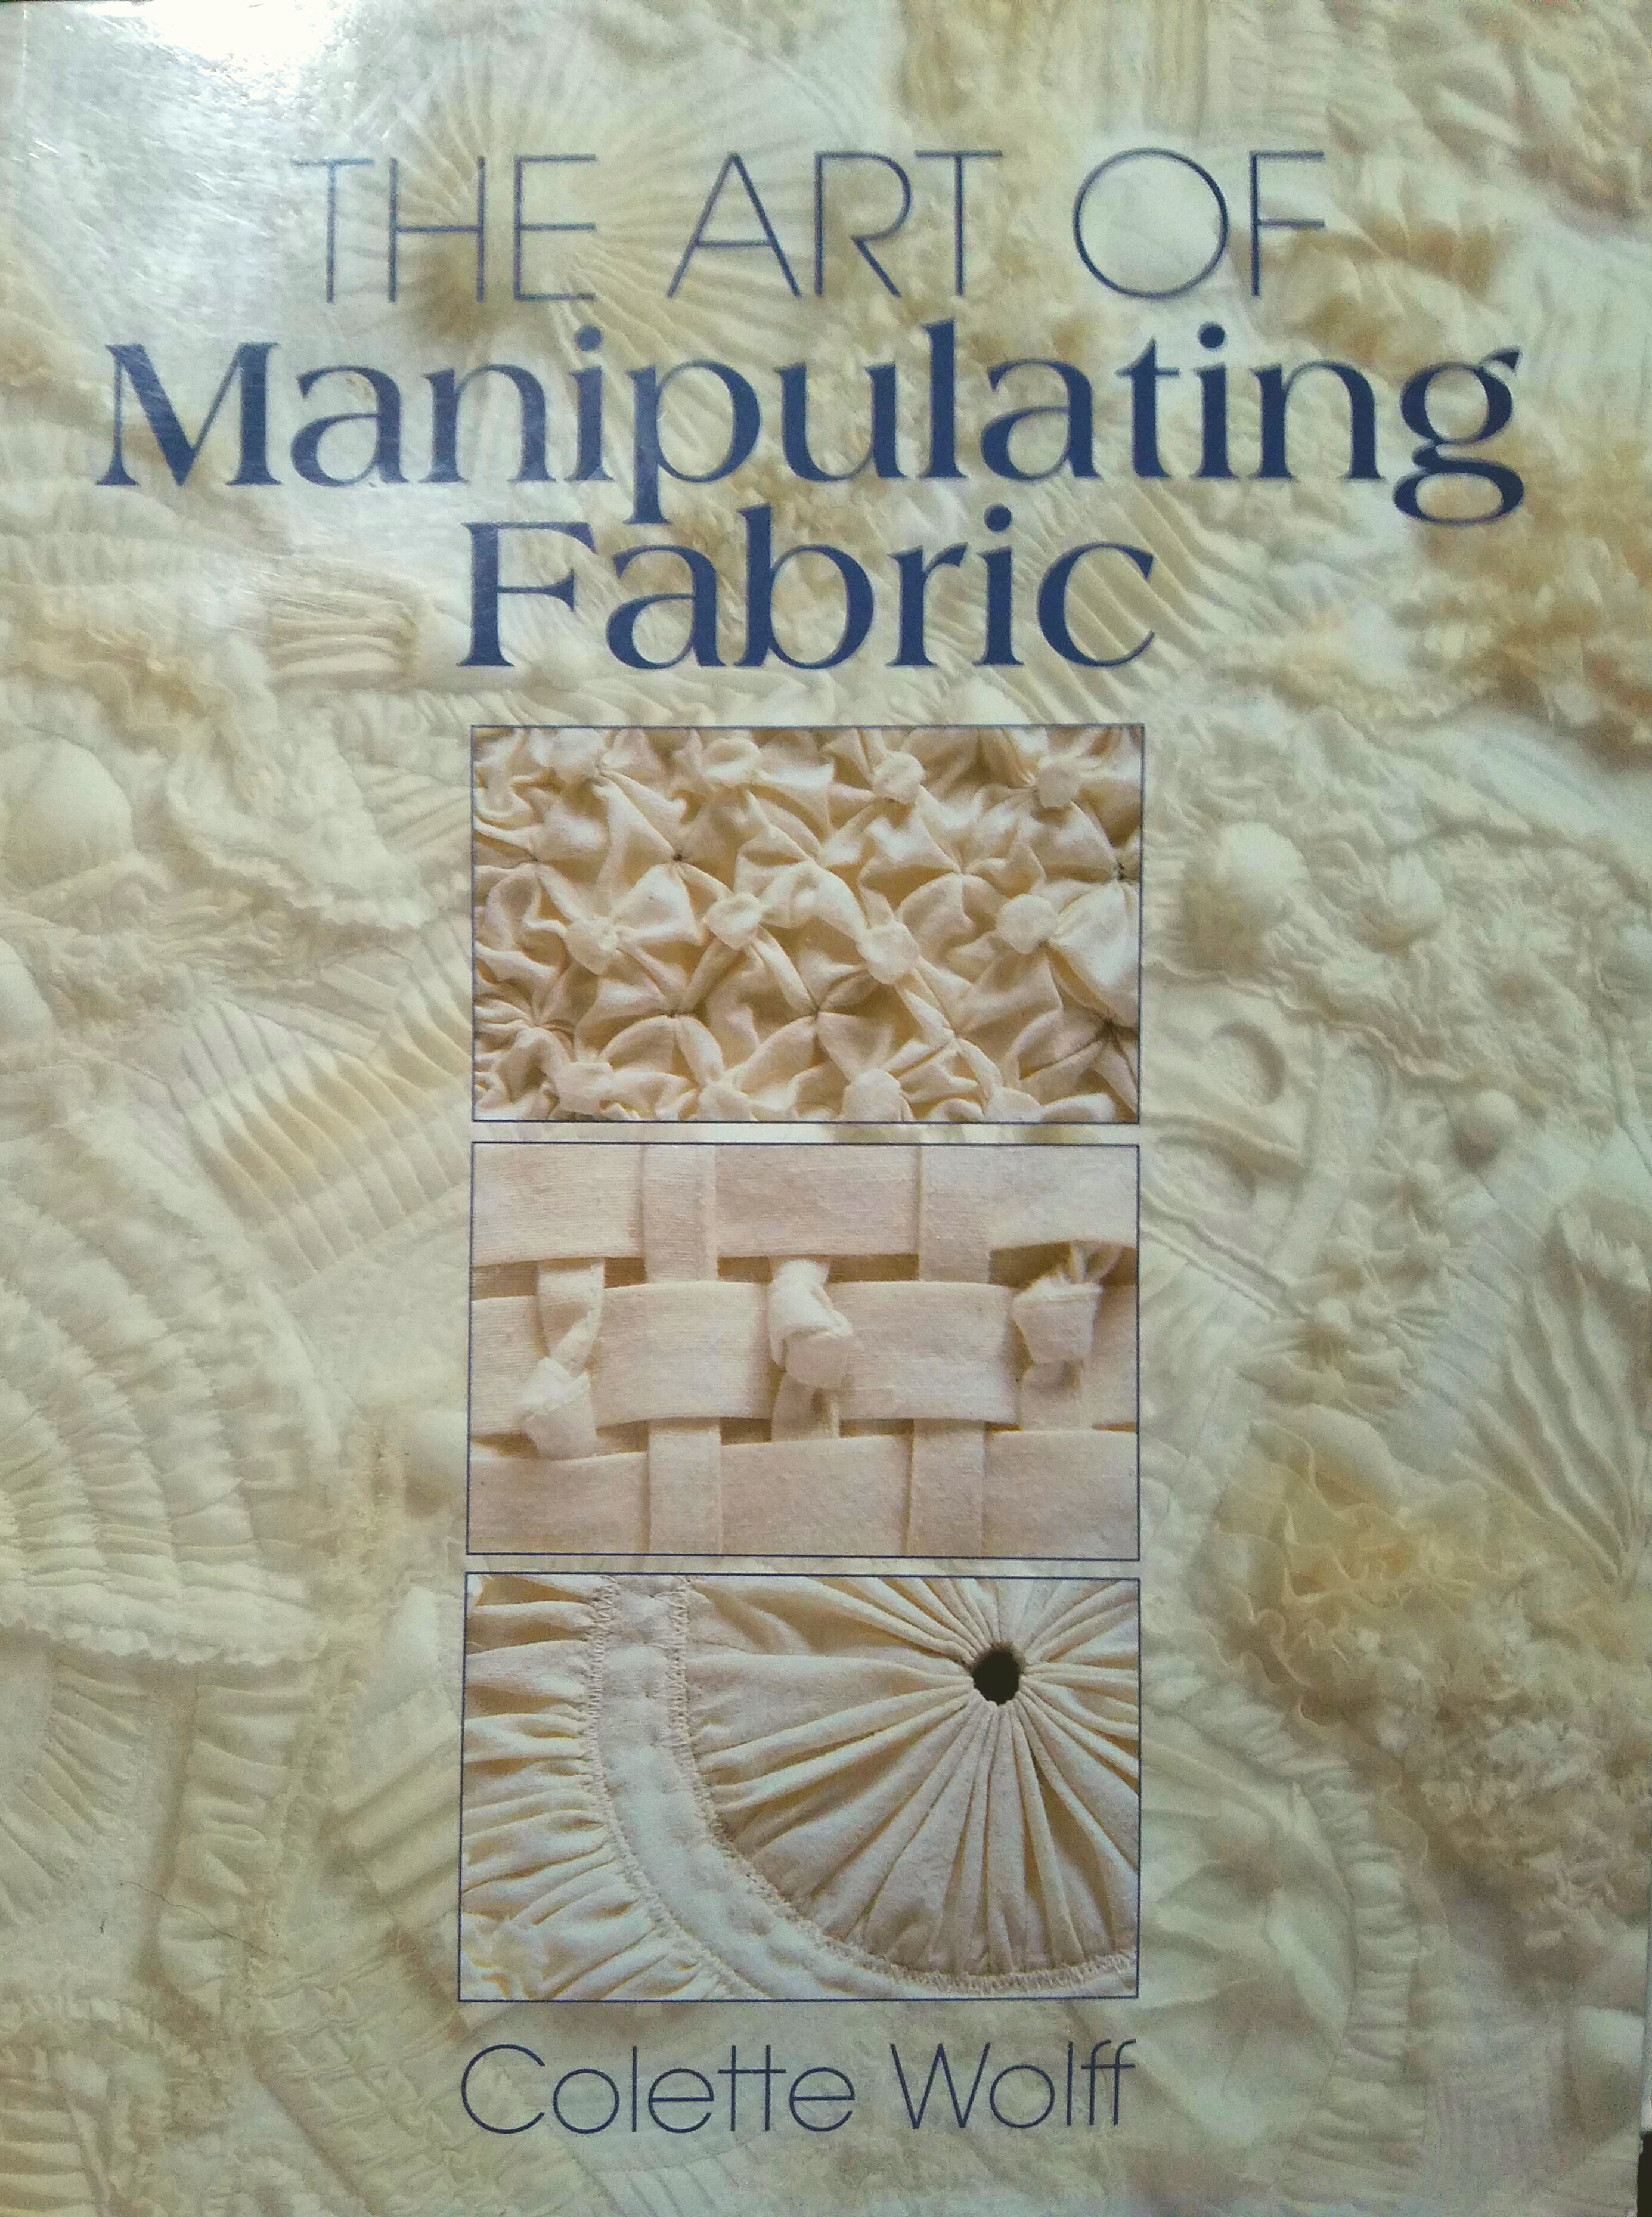 Manipulating Fabric, by Colette Wolff